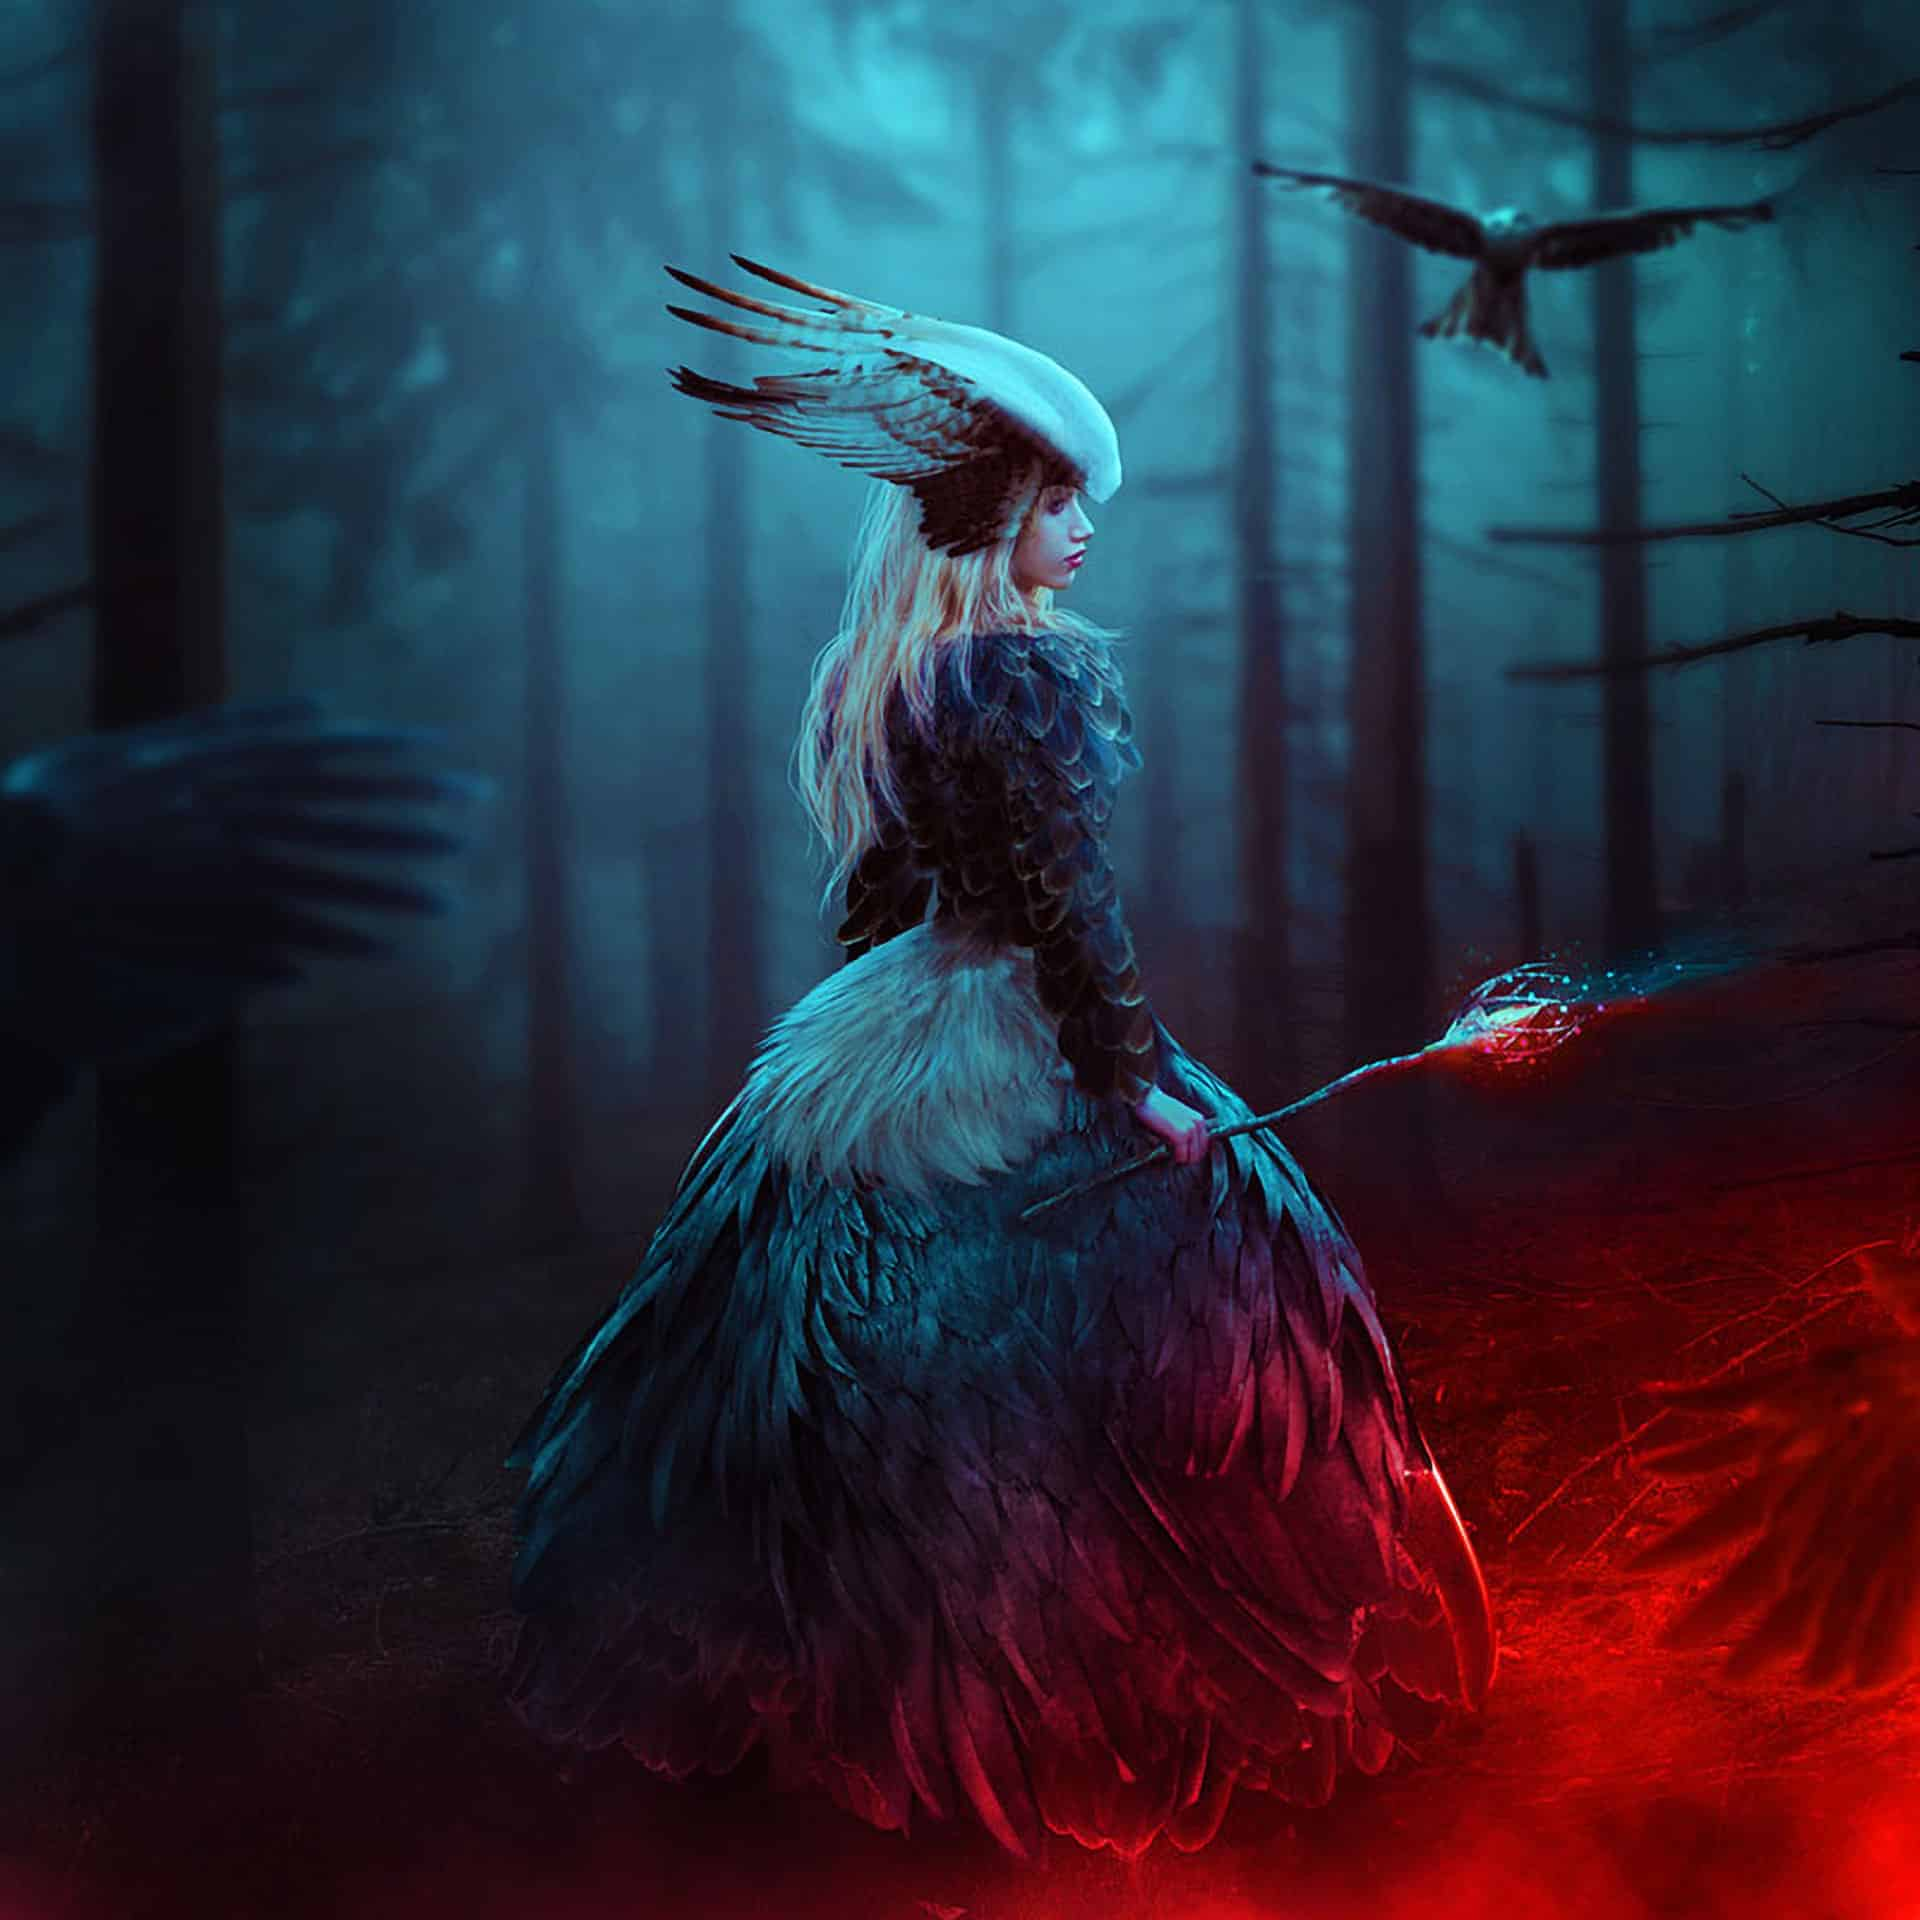 How to Create a Queen of Bird Photo Manipulation in Photoshop